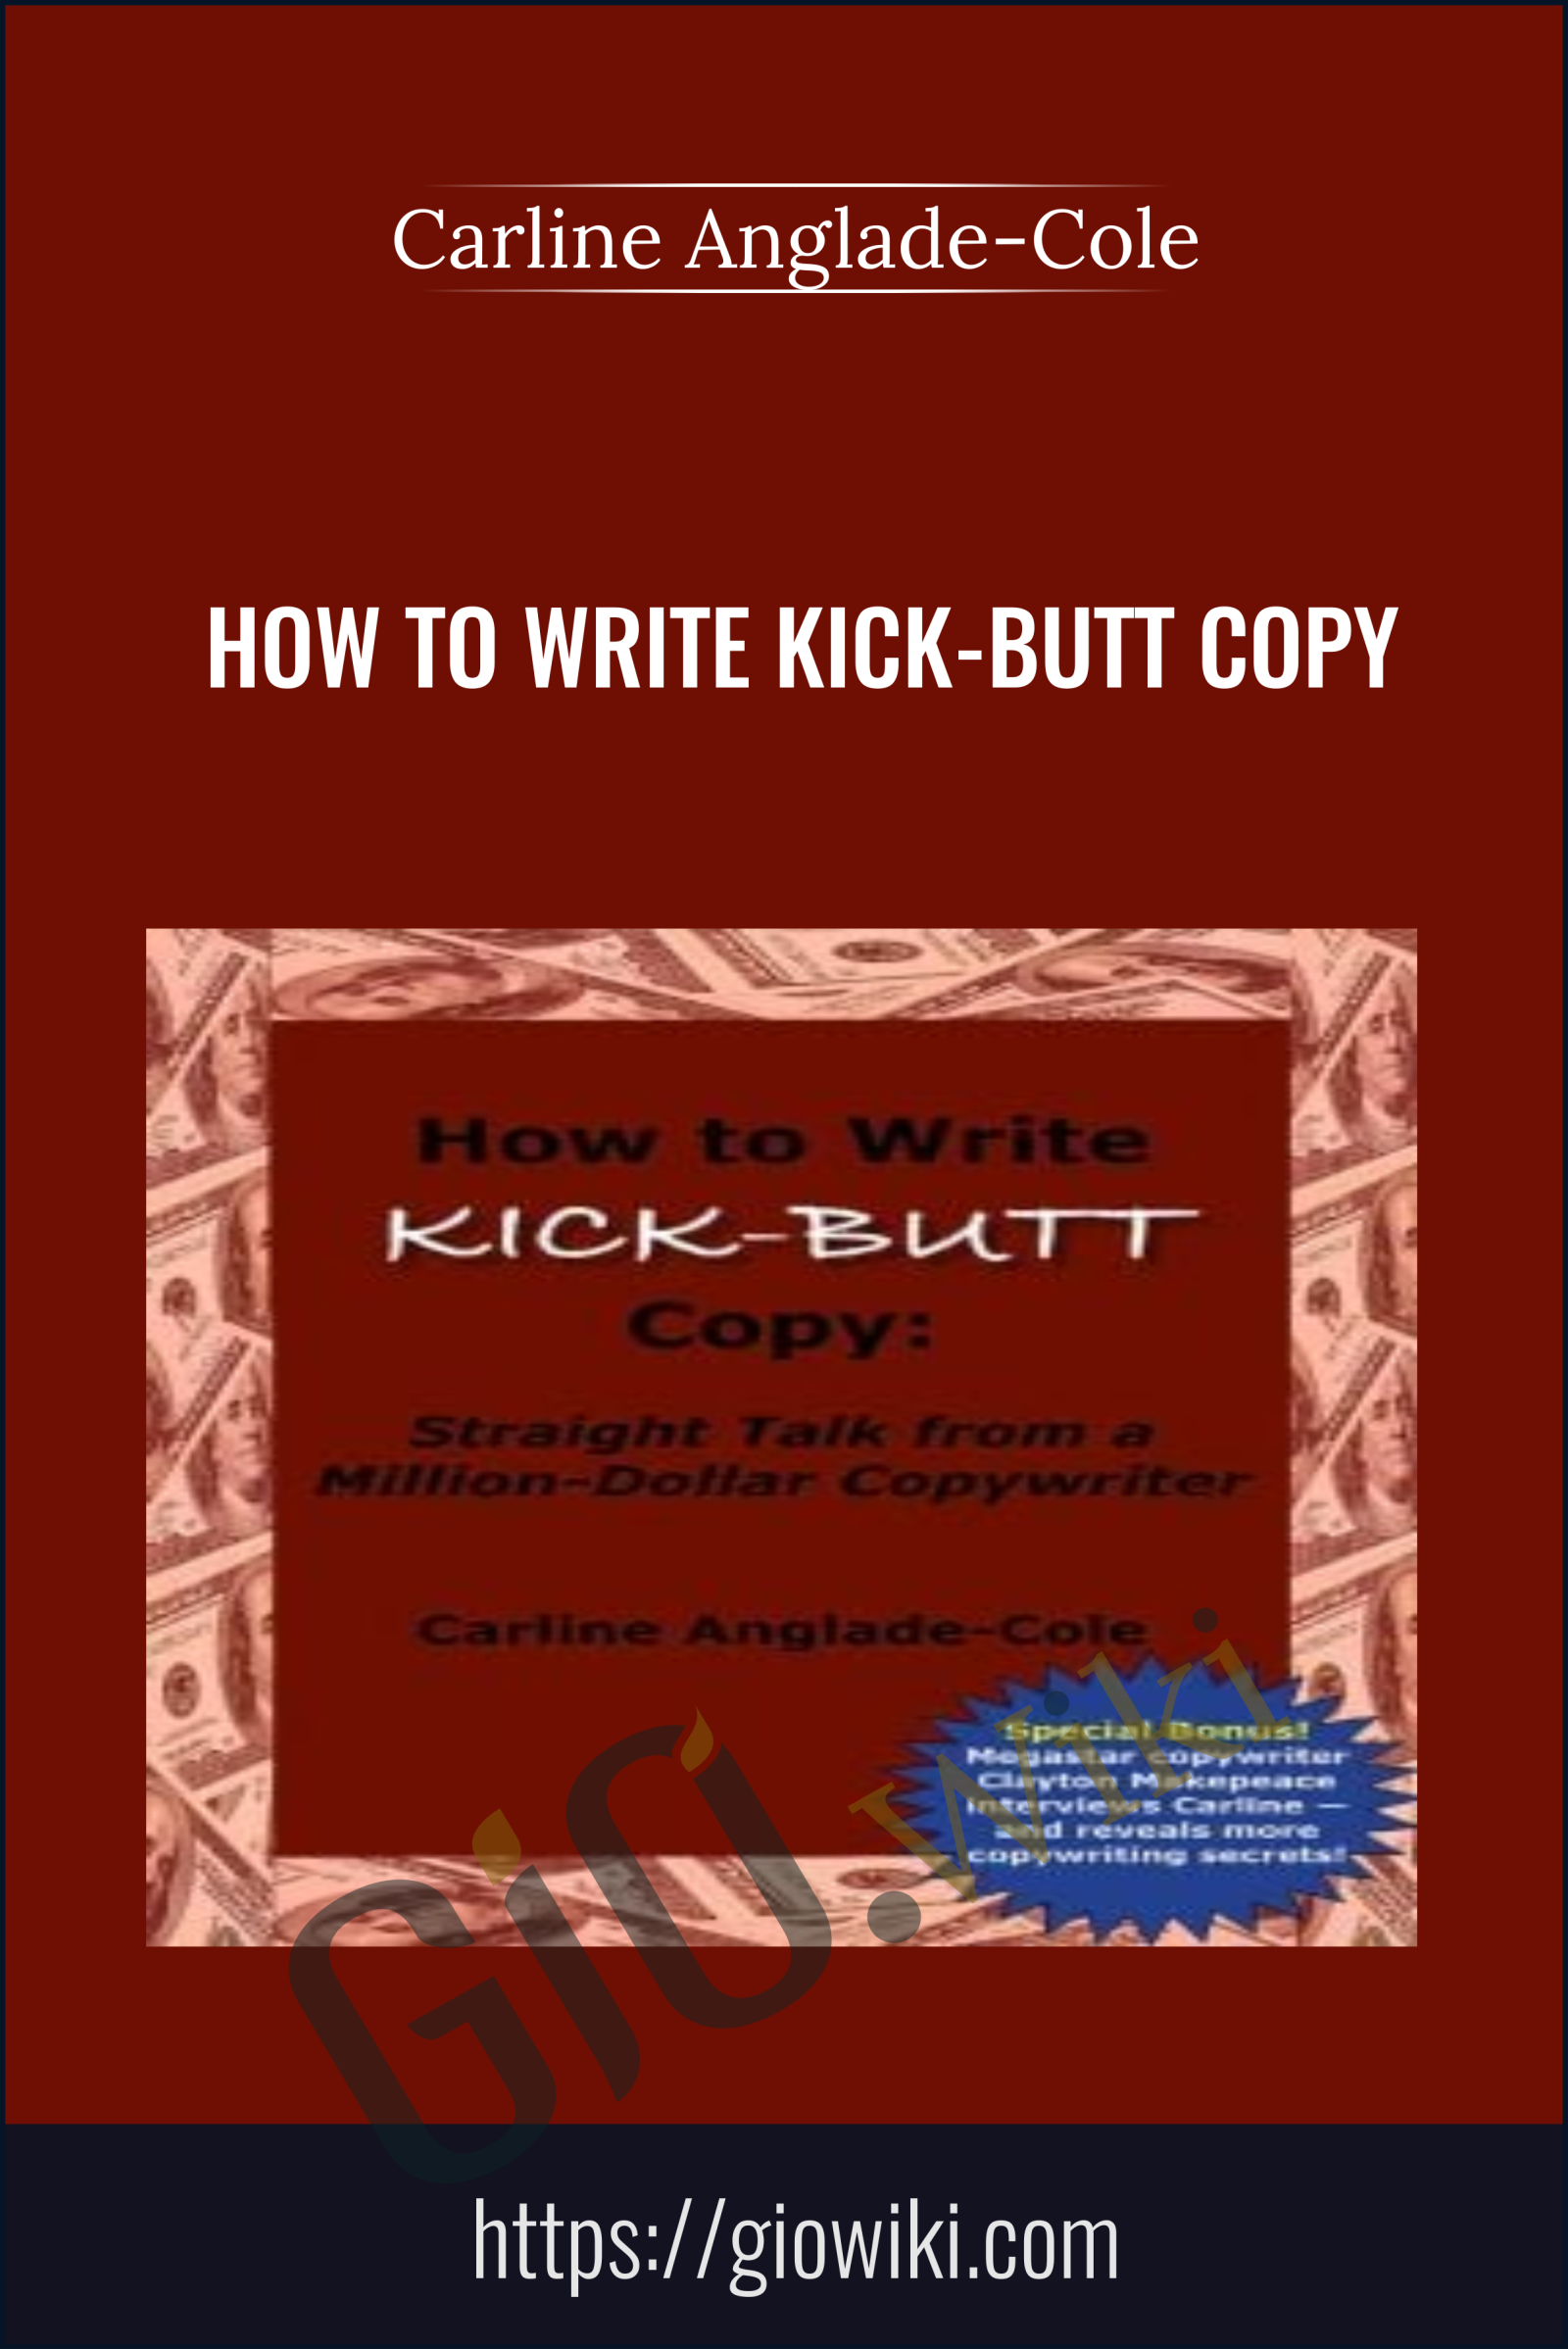 How to Write Kick-Butt Copy - Carline Anglade-Cole